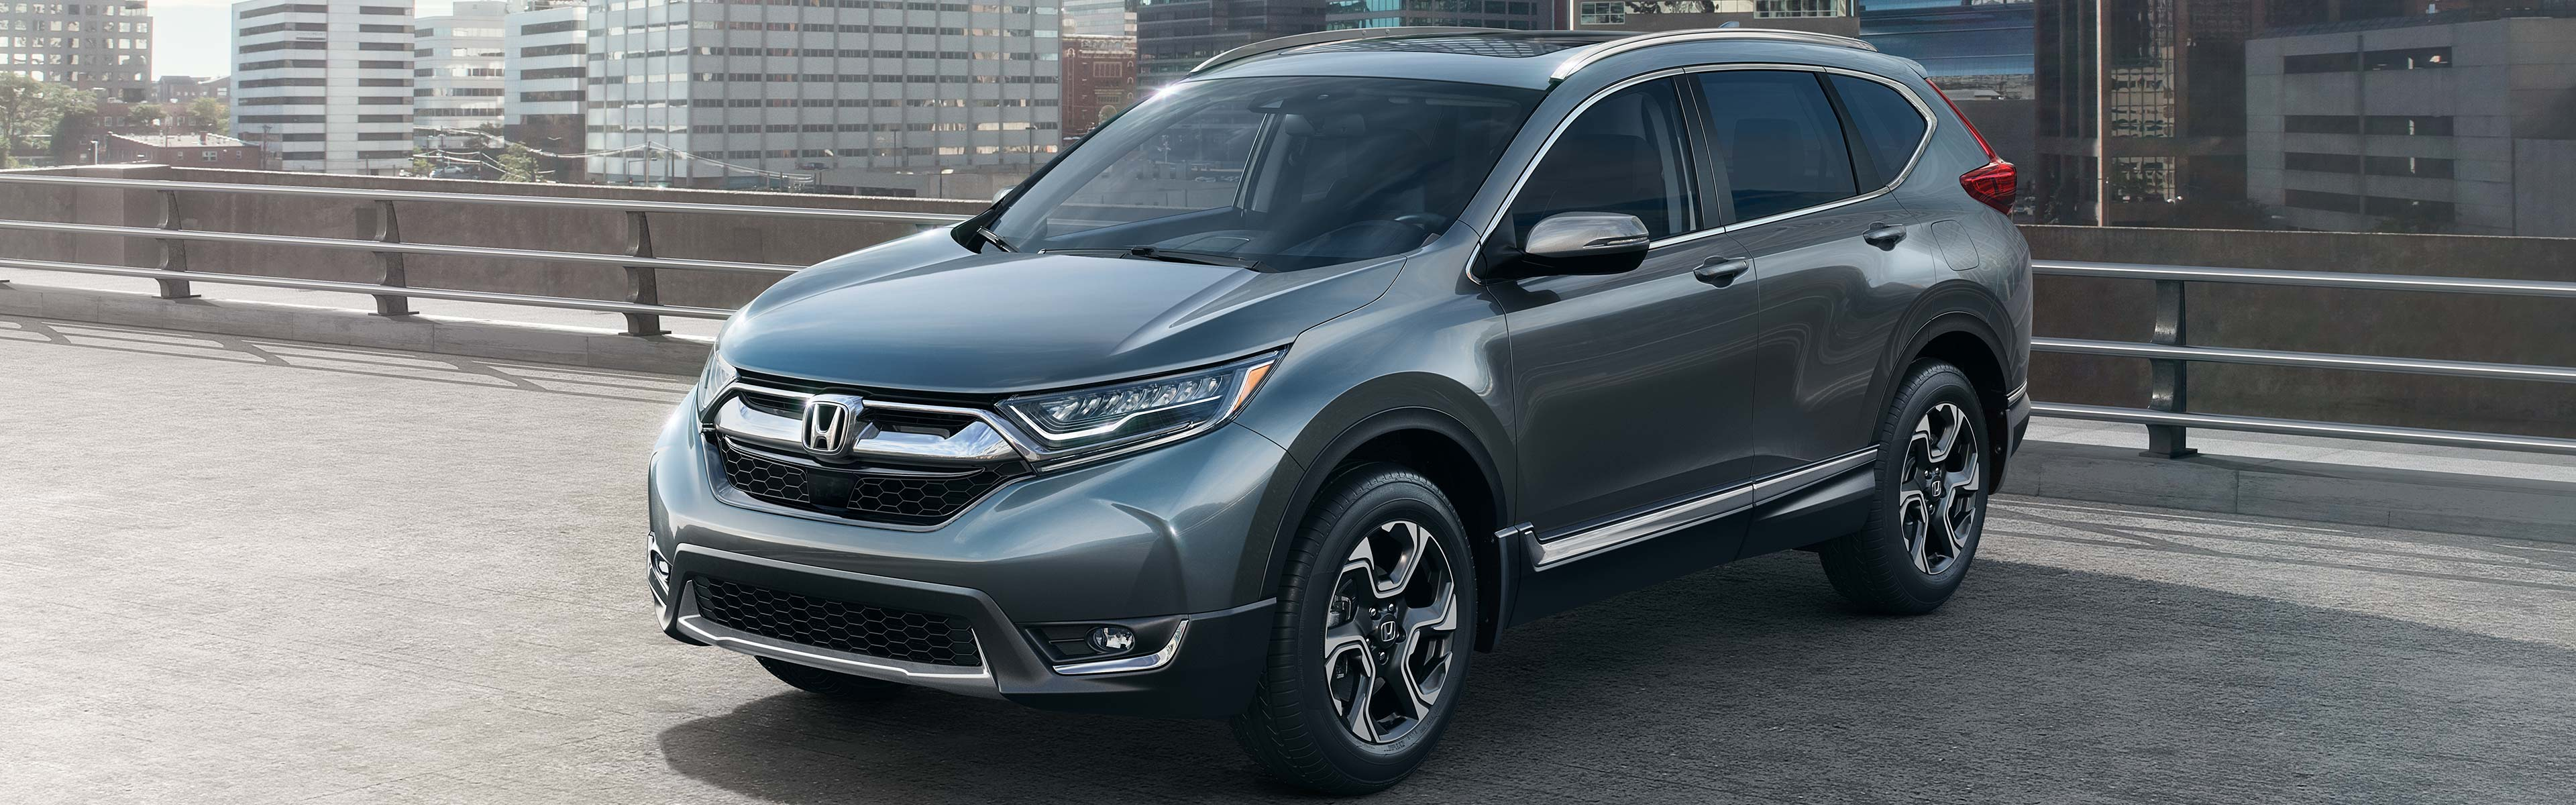 Image of 2017 Honda CR-V